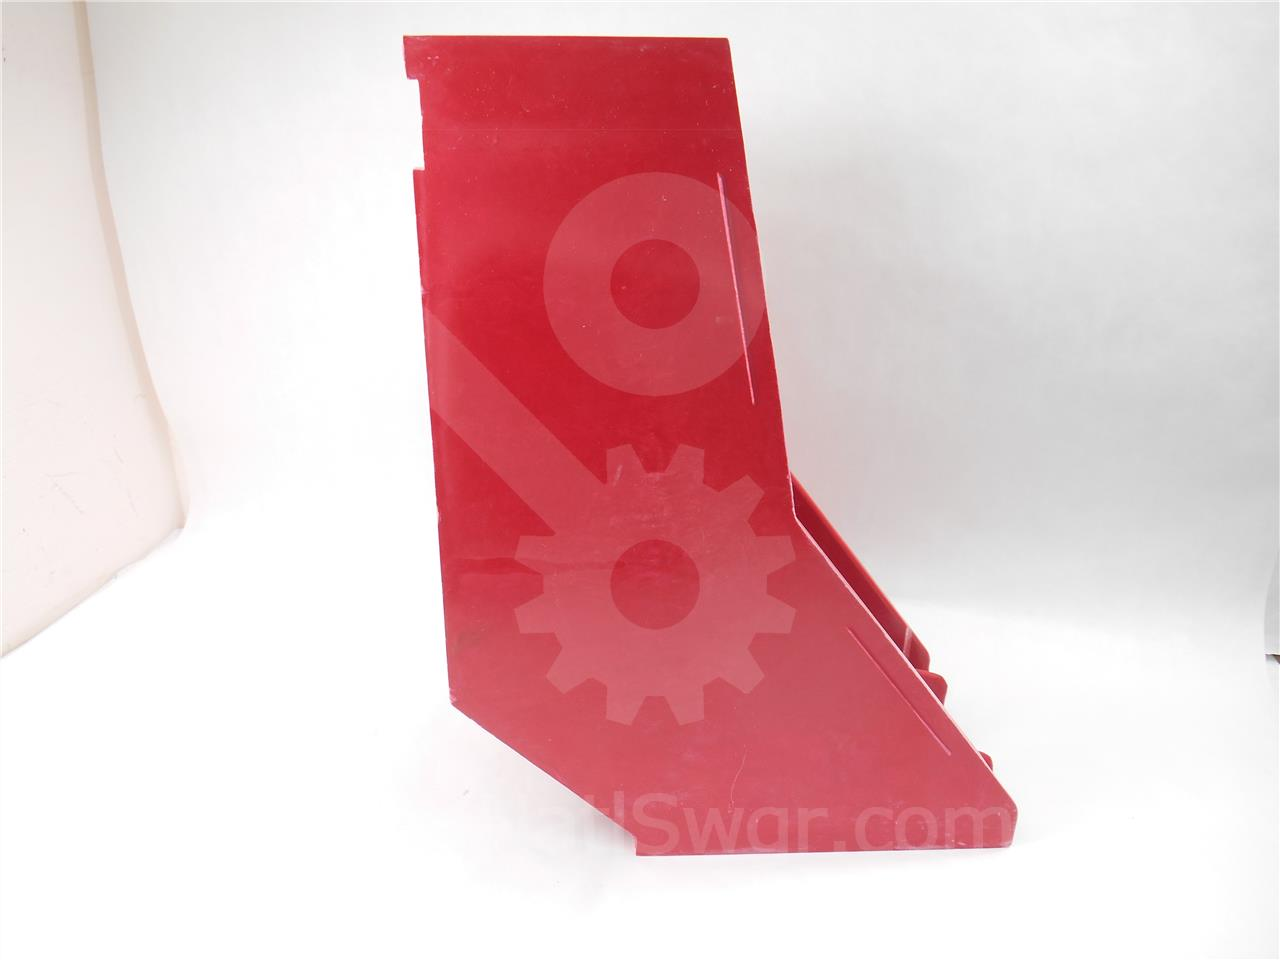 ITE 1200A MAIN CONTACT CHAIR MOLDING FOR 5HK250